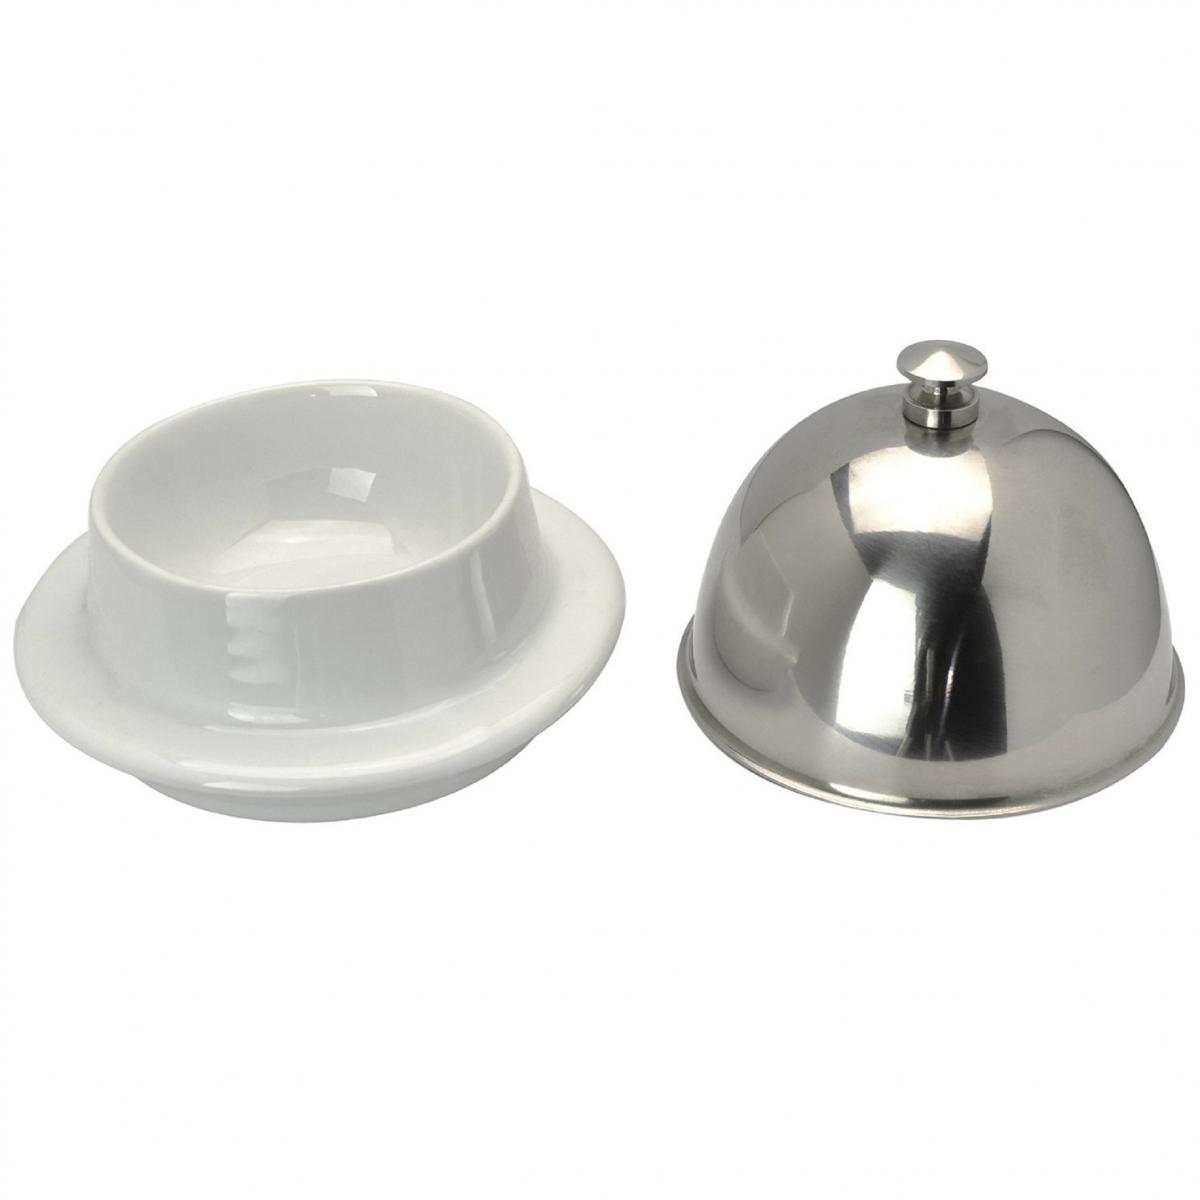 New Sleek White Ceramic Butter Dish Small Serving Tray